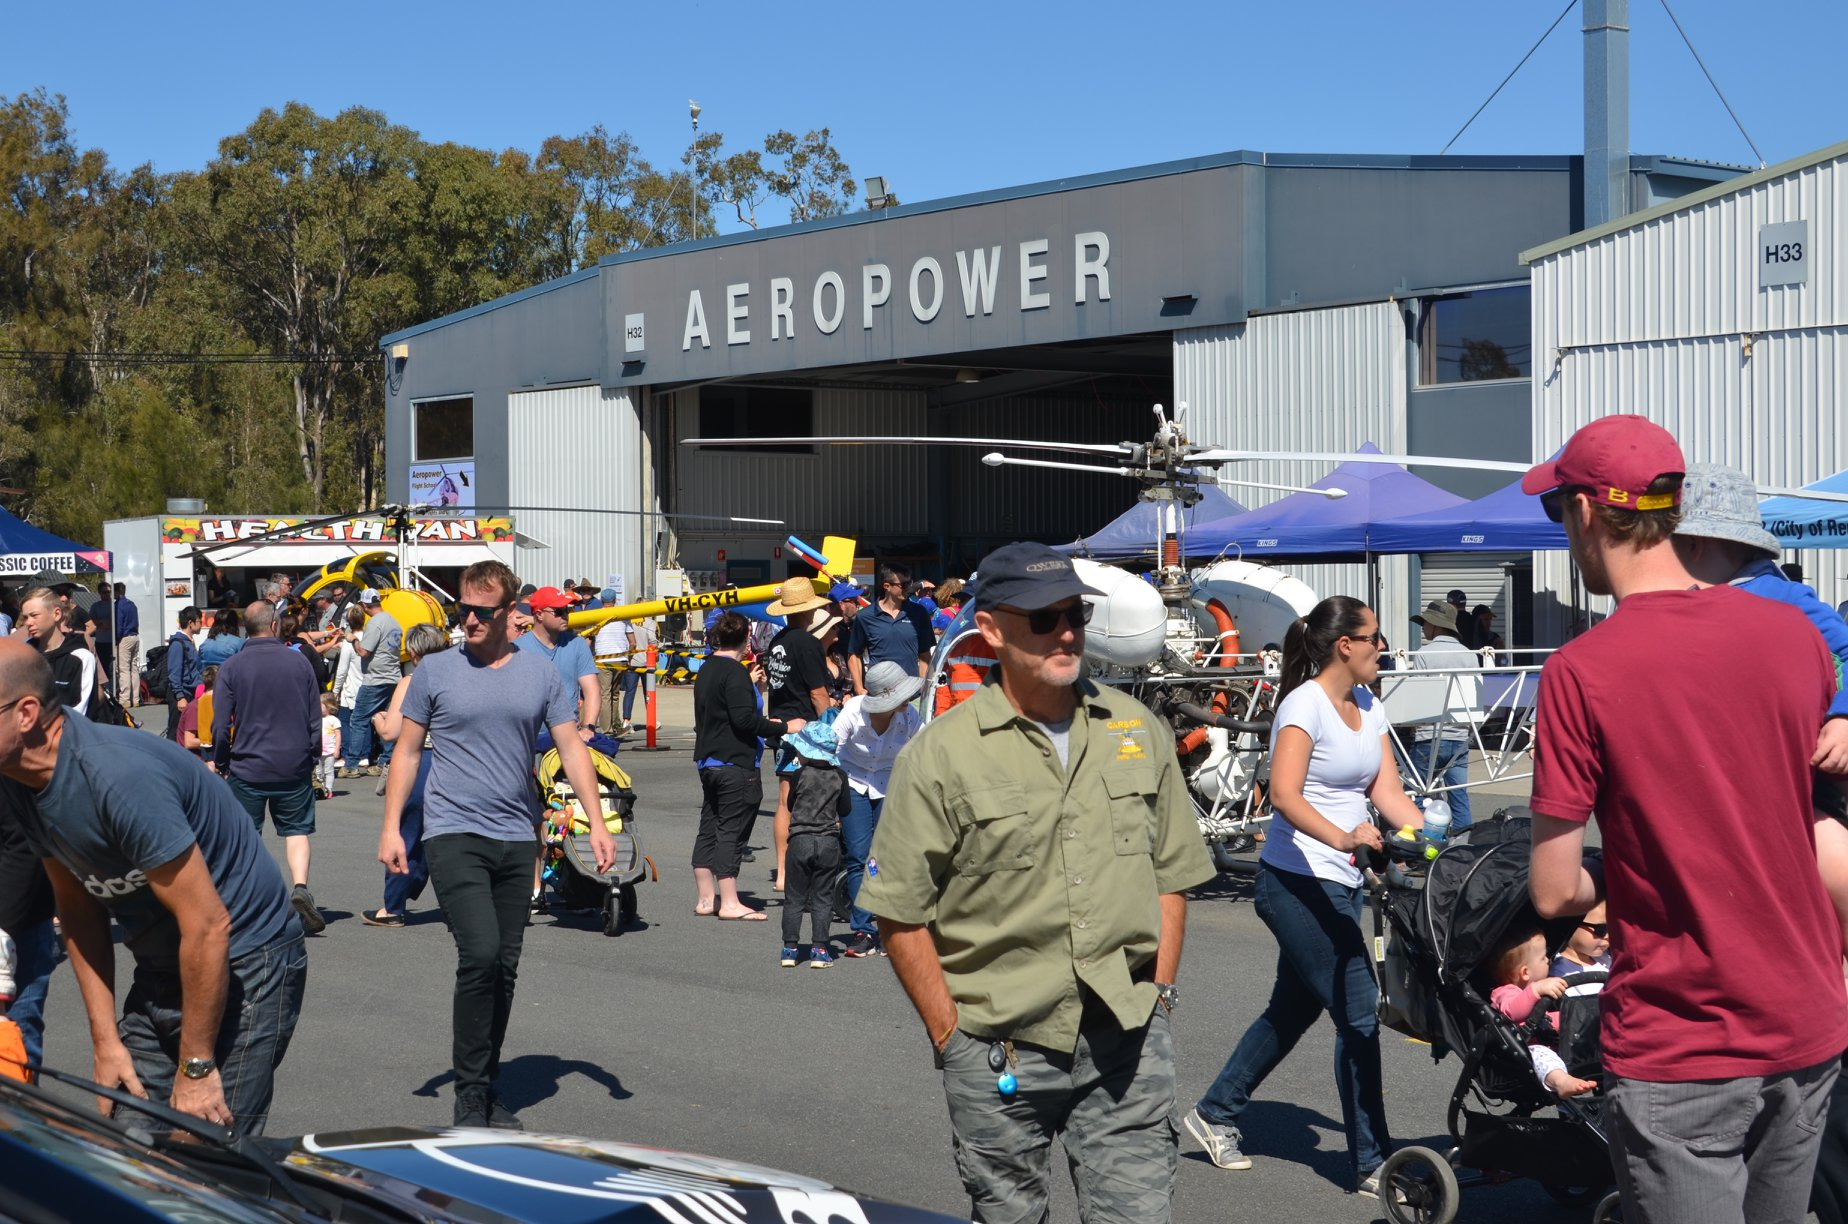 aeropower-events-helicopter-training